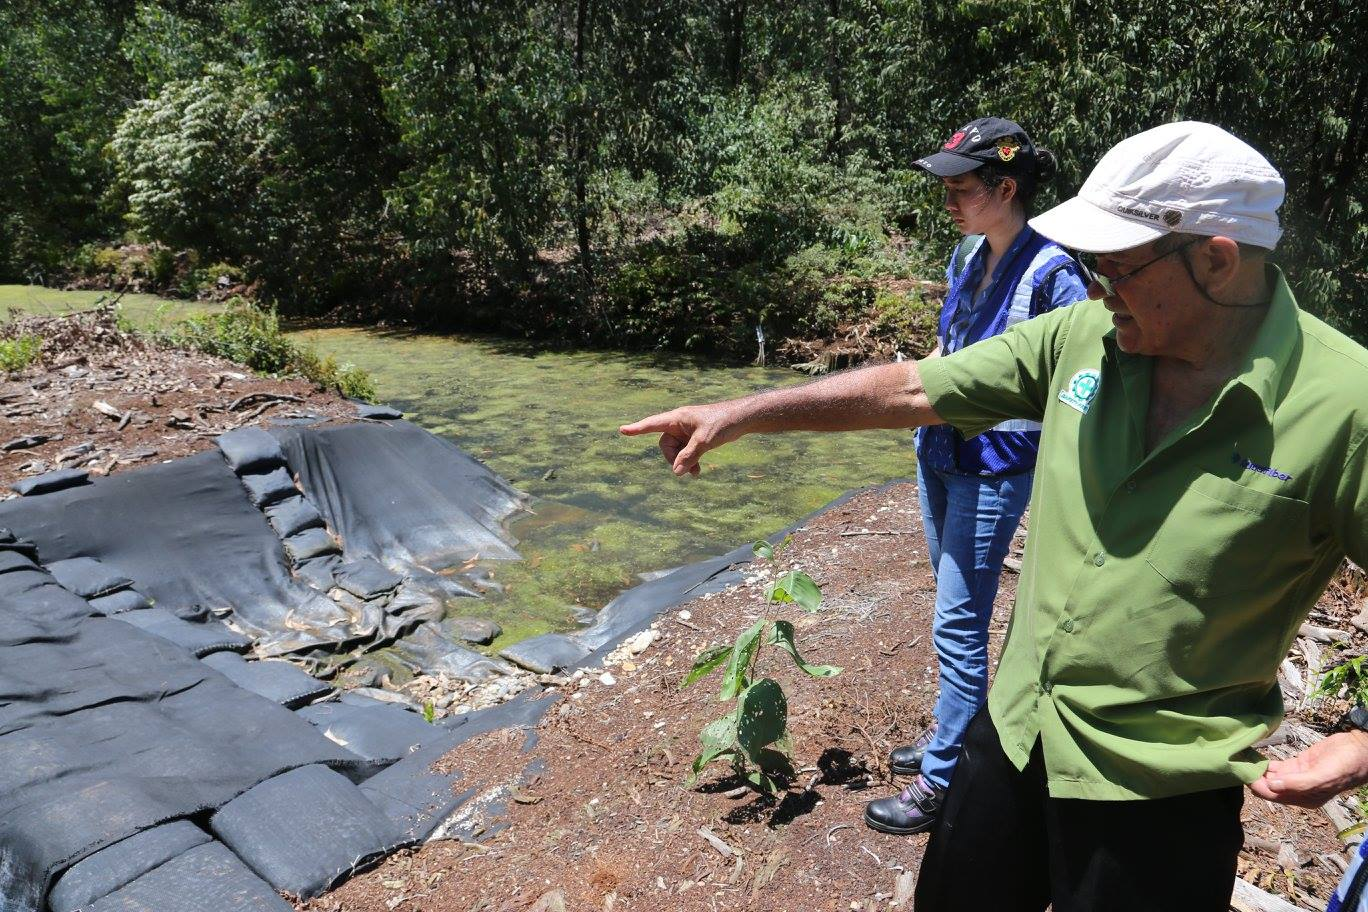 The company constructs dams and bypasses using sandbags. The sandbags are adjusted before the rainy season to maintain an adequate water level in the acacia plantations. APRIL's lowland management expert Dr John Bathgate explains the science.